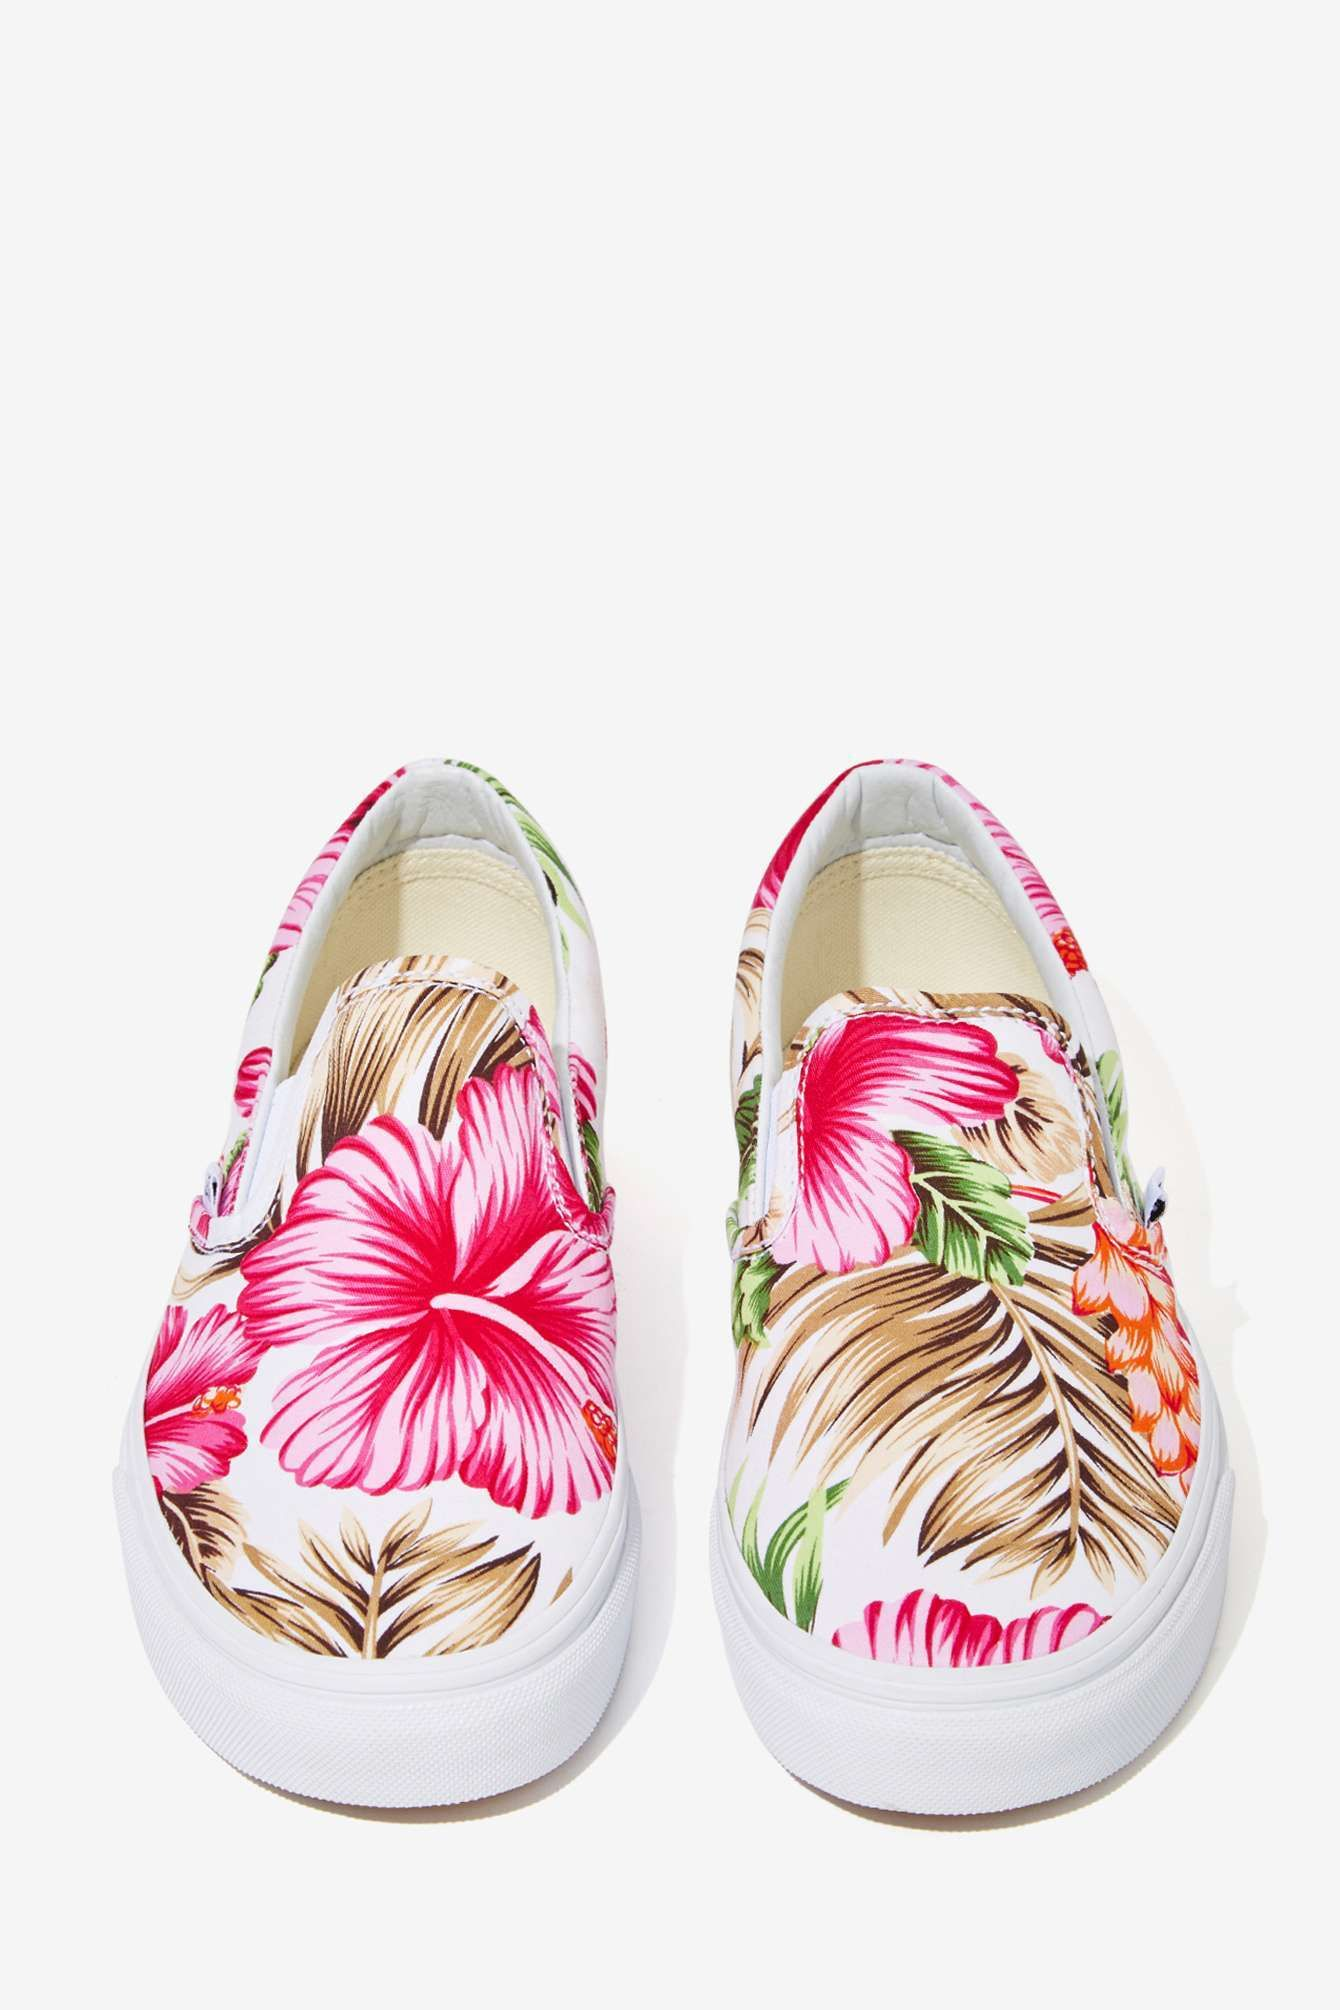 5aaa5ccc70 Vans Classic Slip-On Sneaker - Hawaiian Floral - StudentRate